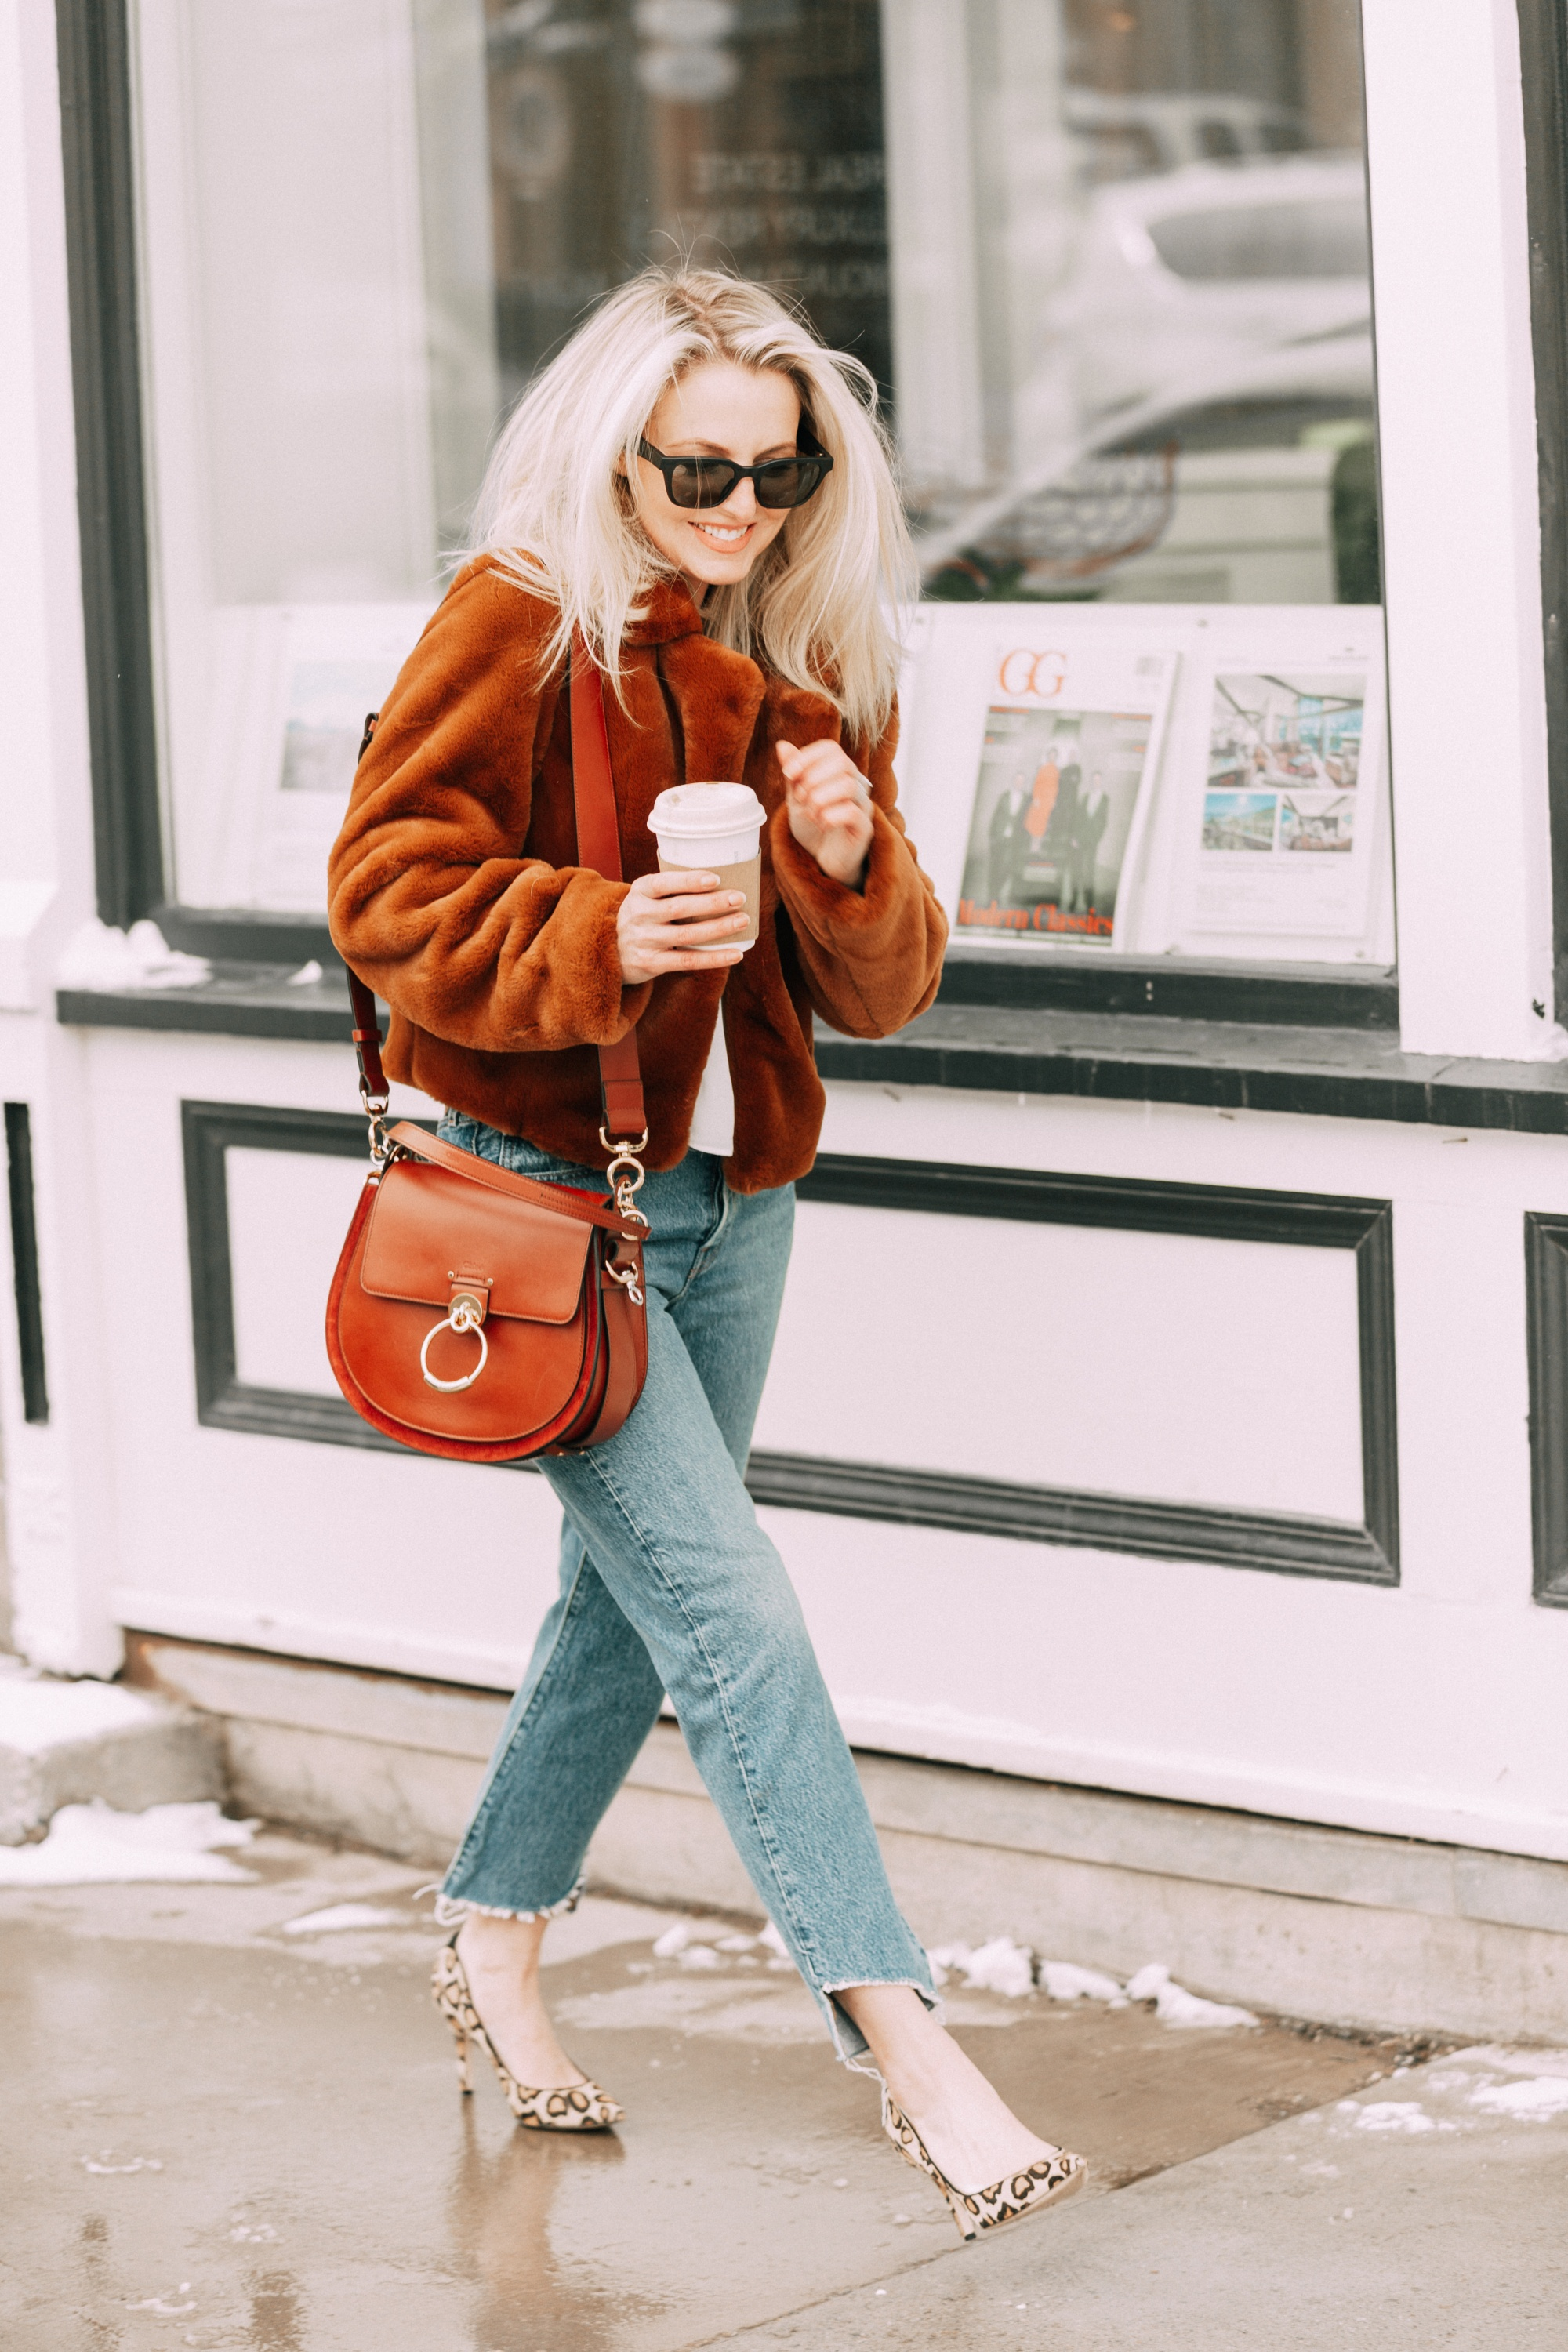 Bose Frames review by lifestyle blogger Erin Busbee, BusbeeStyle.com, wearing the Alto frames in black with a brown faux fur jacket by BlankNYC and carrying a sepia Chloe Tess Bag